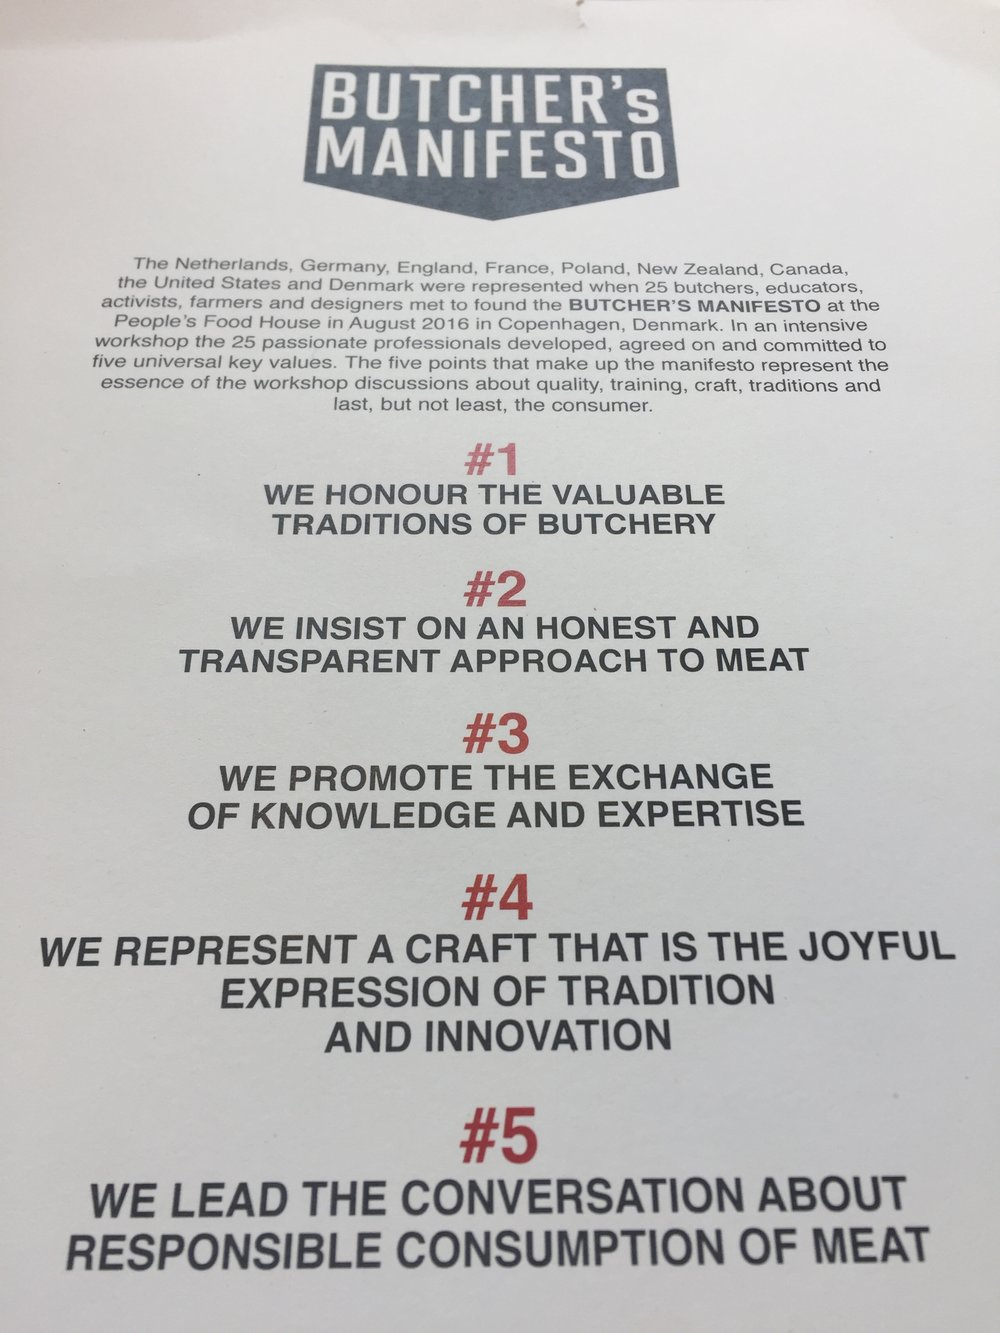 The Butcher's Manifesto - We are a part of The Butcher's Manifest0 - a collection of meat industry professionals who are committed to driving the industry forward by committing to the five universal key values:#1 WE HONOUR THE VALUABLE TRADITIONS OF BUTCHERY#2 WE INSIST ON AN HONEST AND TRANSPARENT APPROACH TO MEAT#3 WE PROMOTE THE EXCHANGE OF KNOWLEDGE AND EXPERTISE#4 WE REPRESENT A CRAFT THAT IS THE JOYFUL EXPRESSION OF TRADITIONS AND INNOVATION#5 WE LEAD THE CONVERSATION ABOUT RESPONSIBLE CONSUMPTION OF MEAT